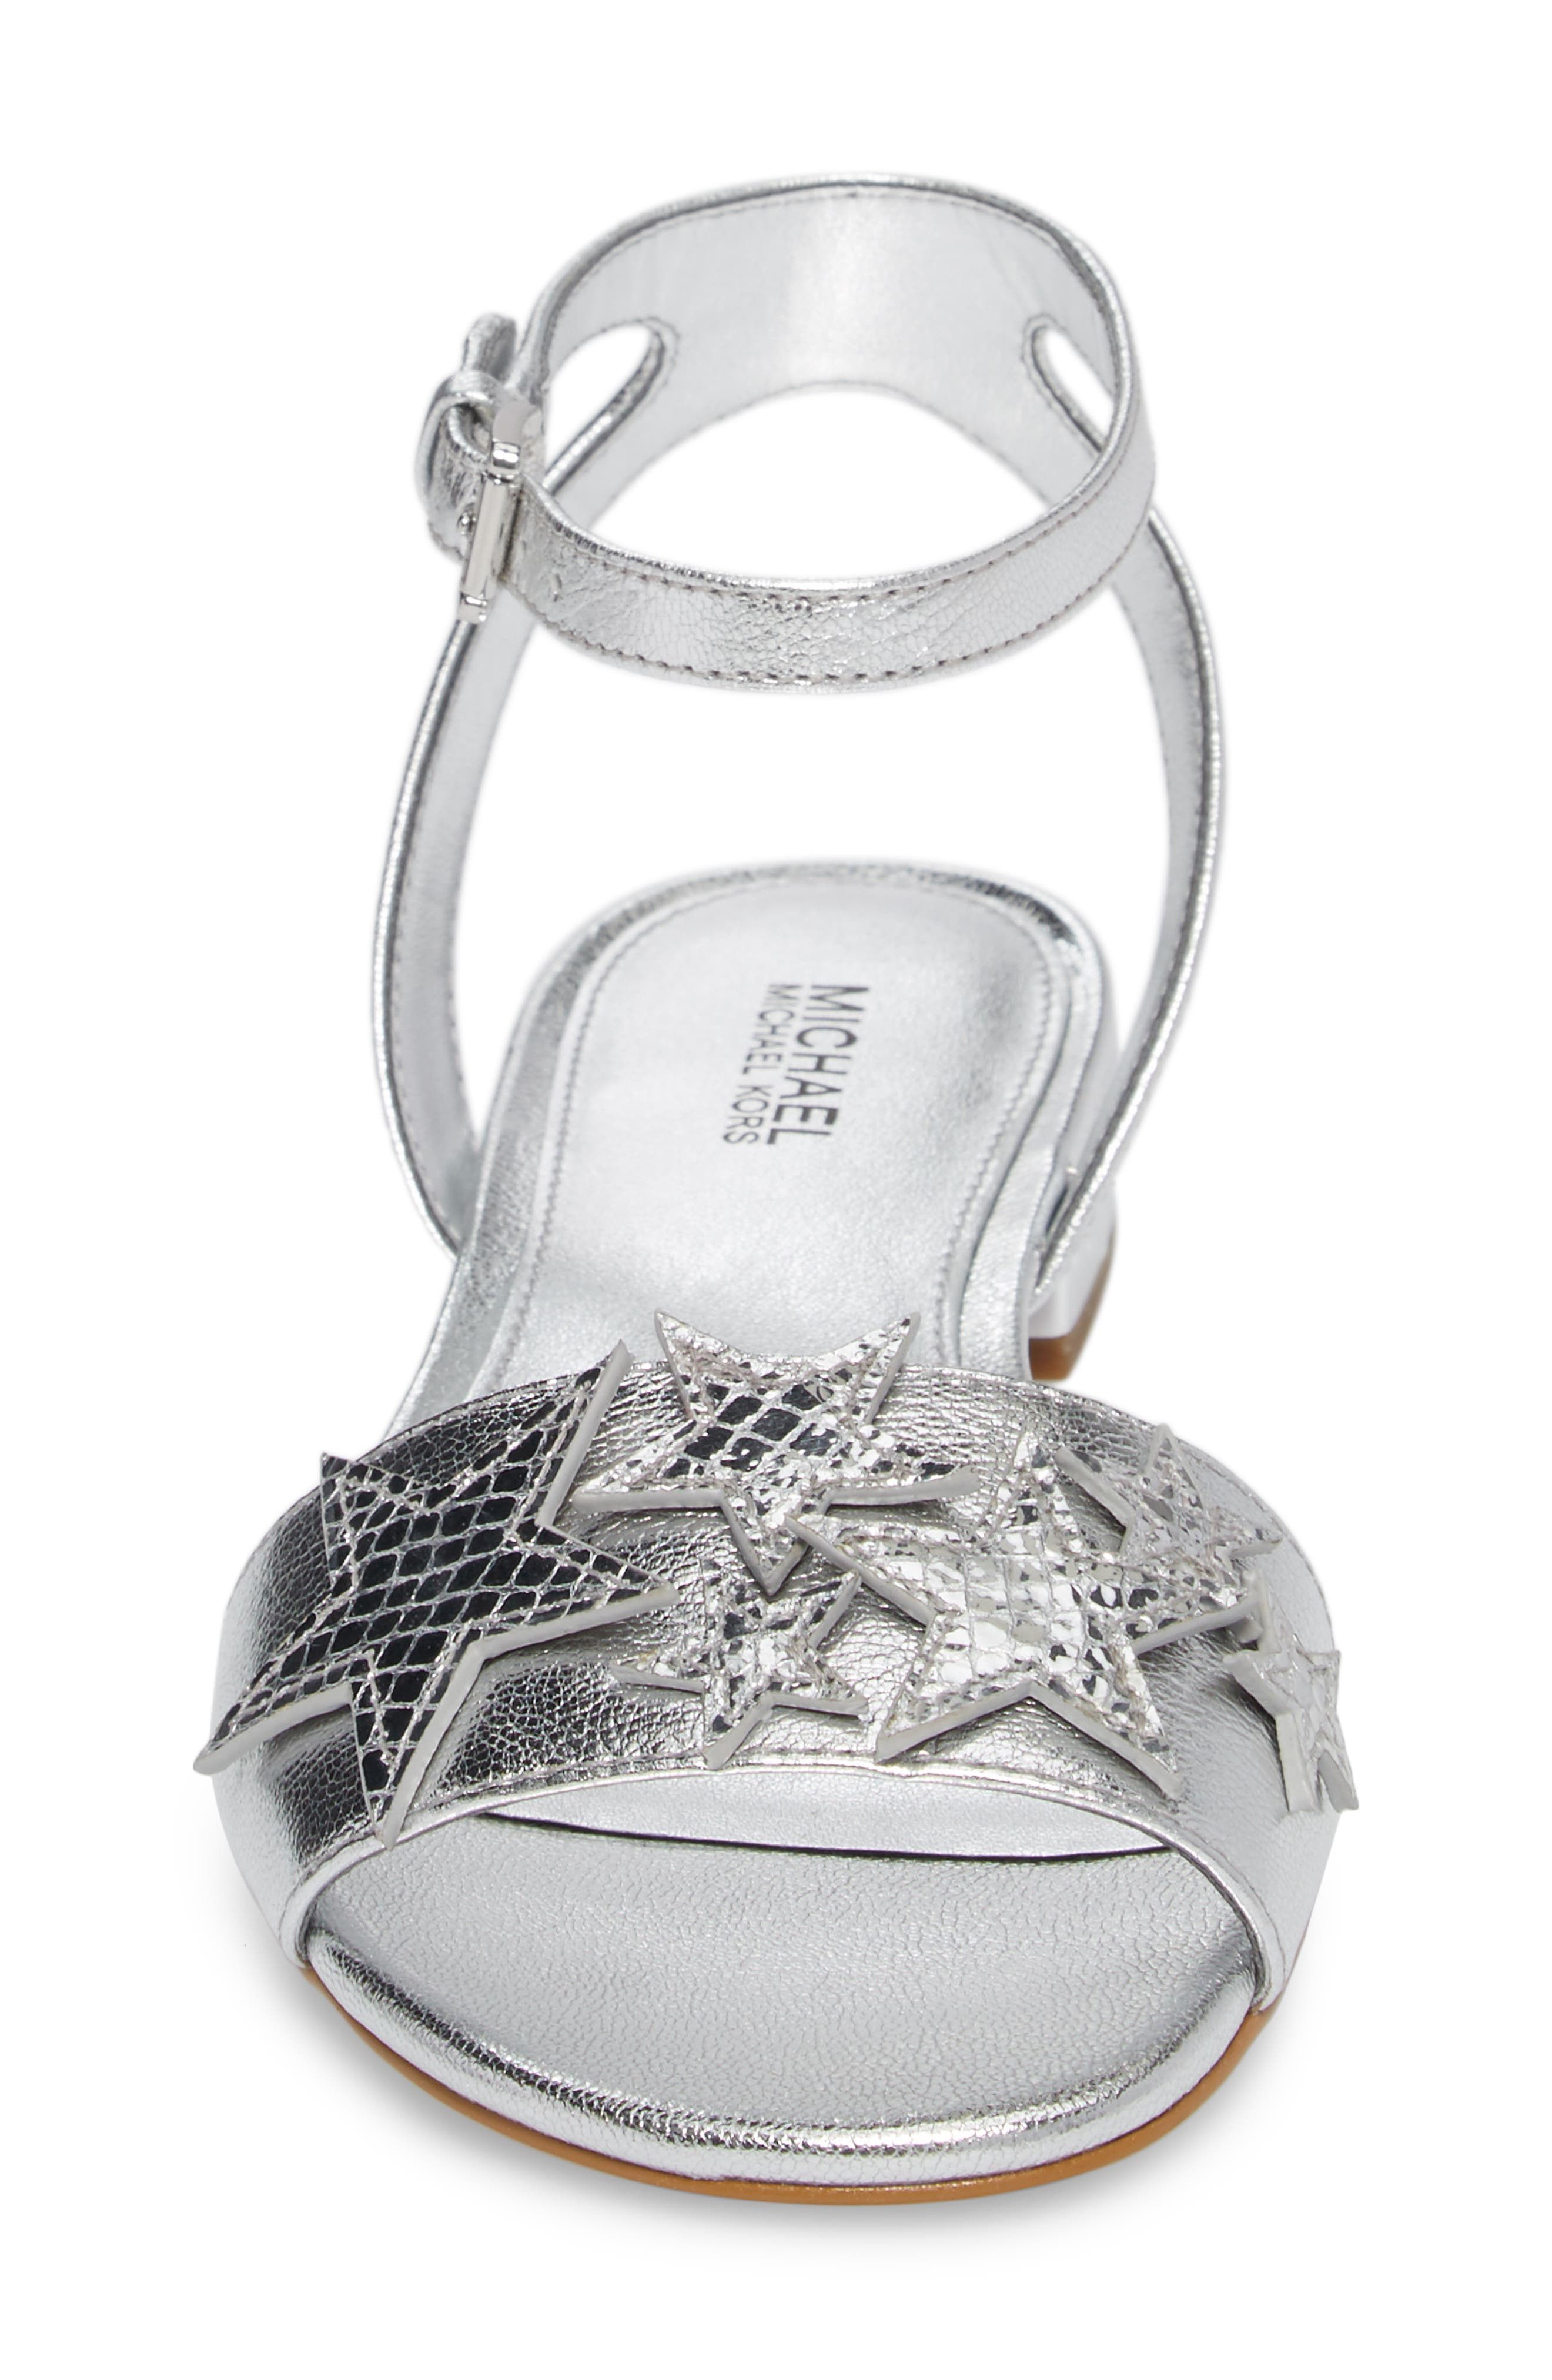 Lexie Star Embellished Sandal,                             Alternate thumbnail 4, color,                             Silver Nappa Leather